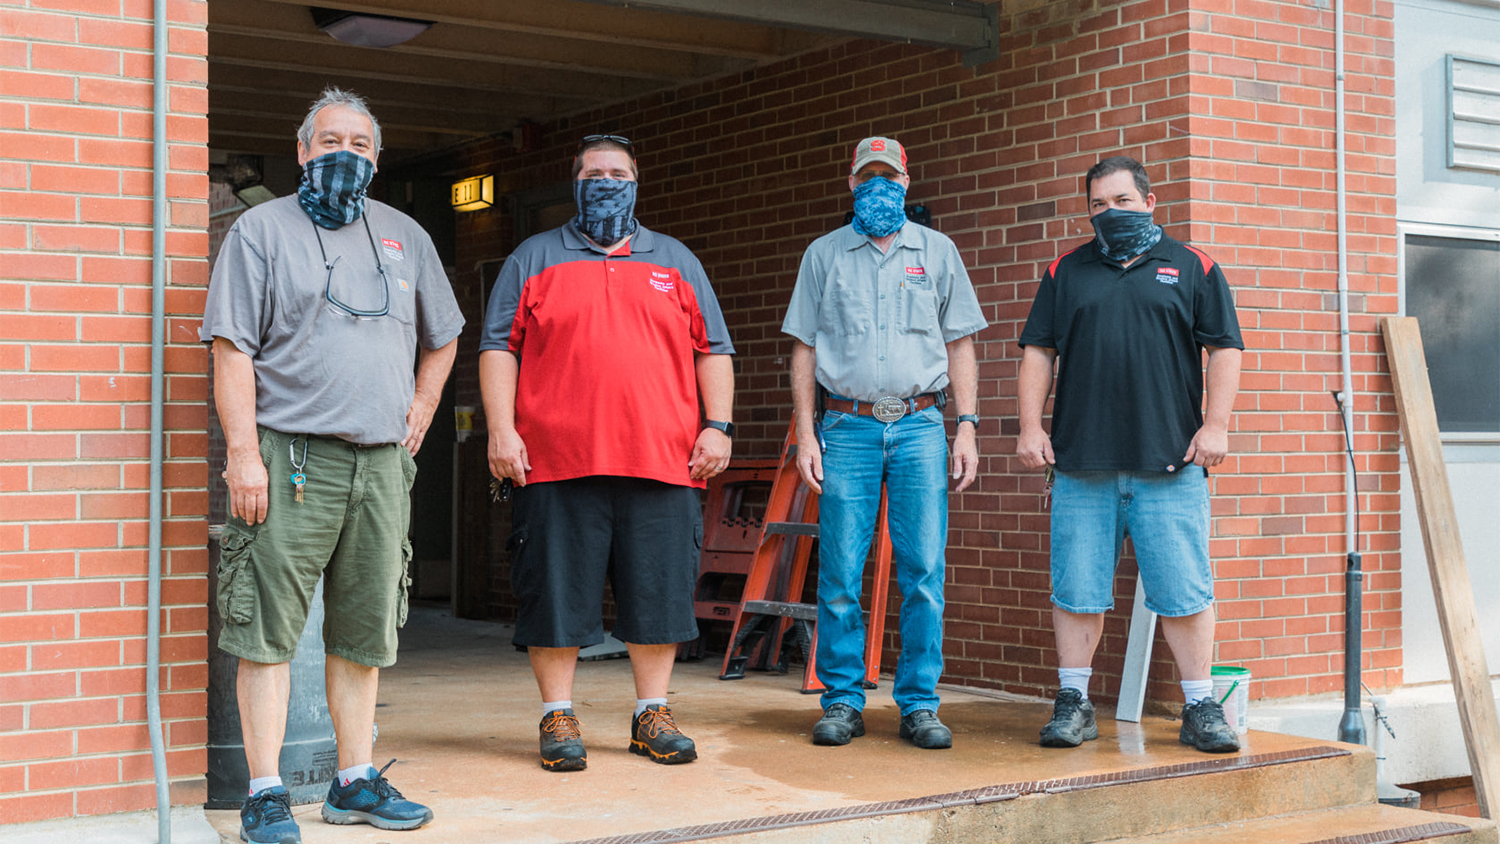 DASA Facilities staff members: James Carpenter, Dale Lefler, Ray Corbett, and Vladimir Wall